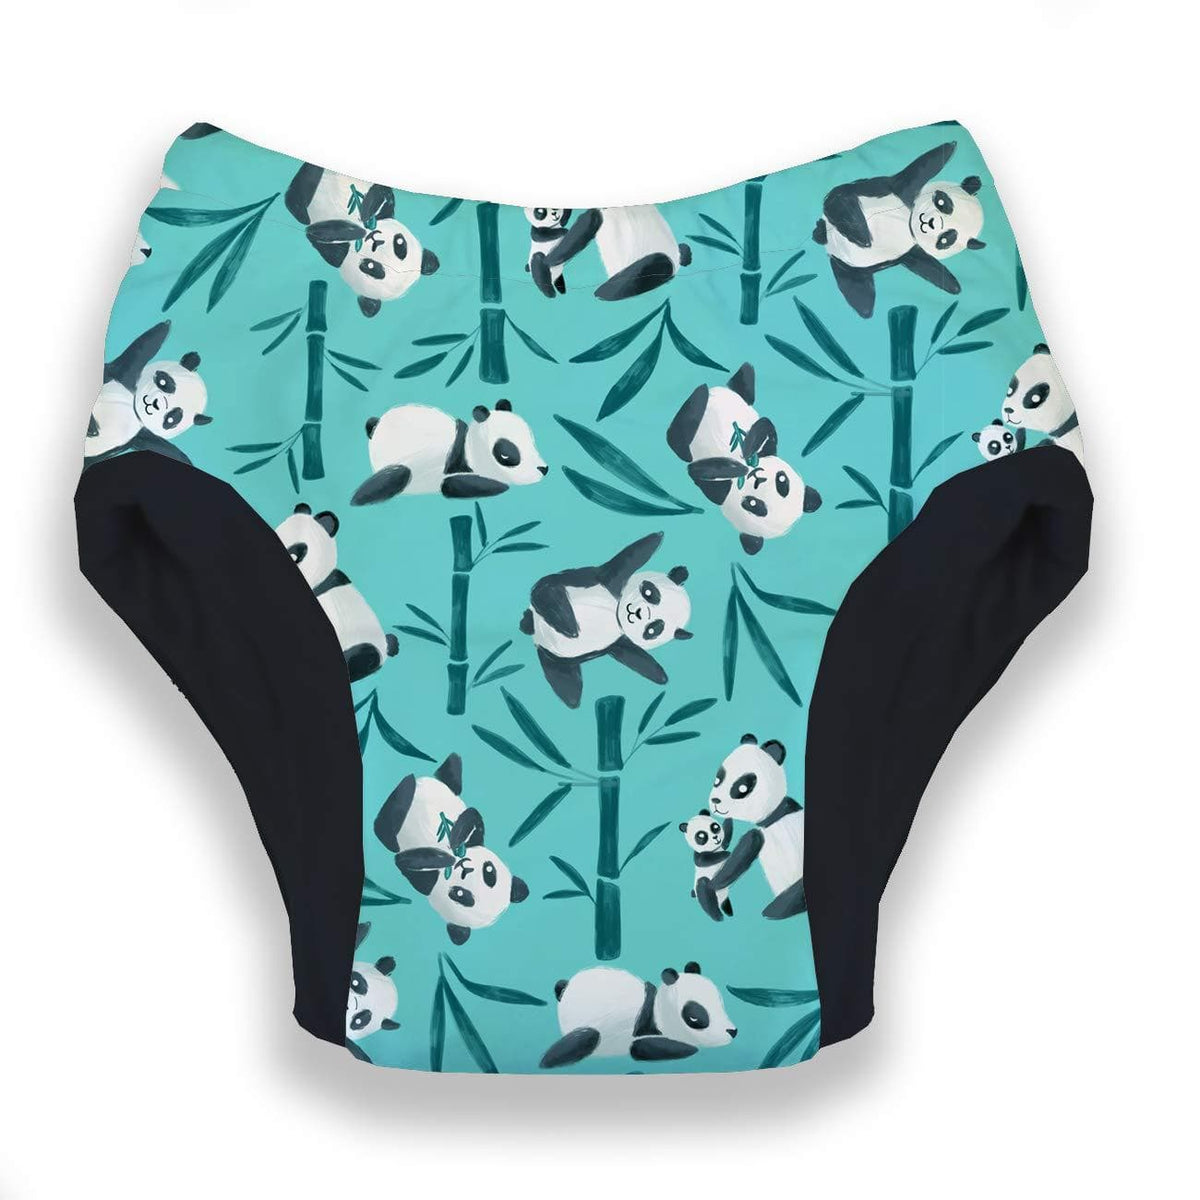 Thirsties Potty Training Pant - Pandamonium